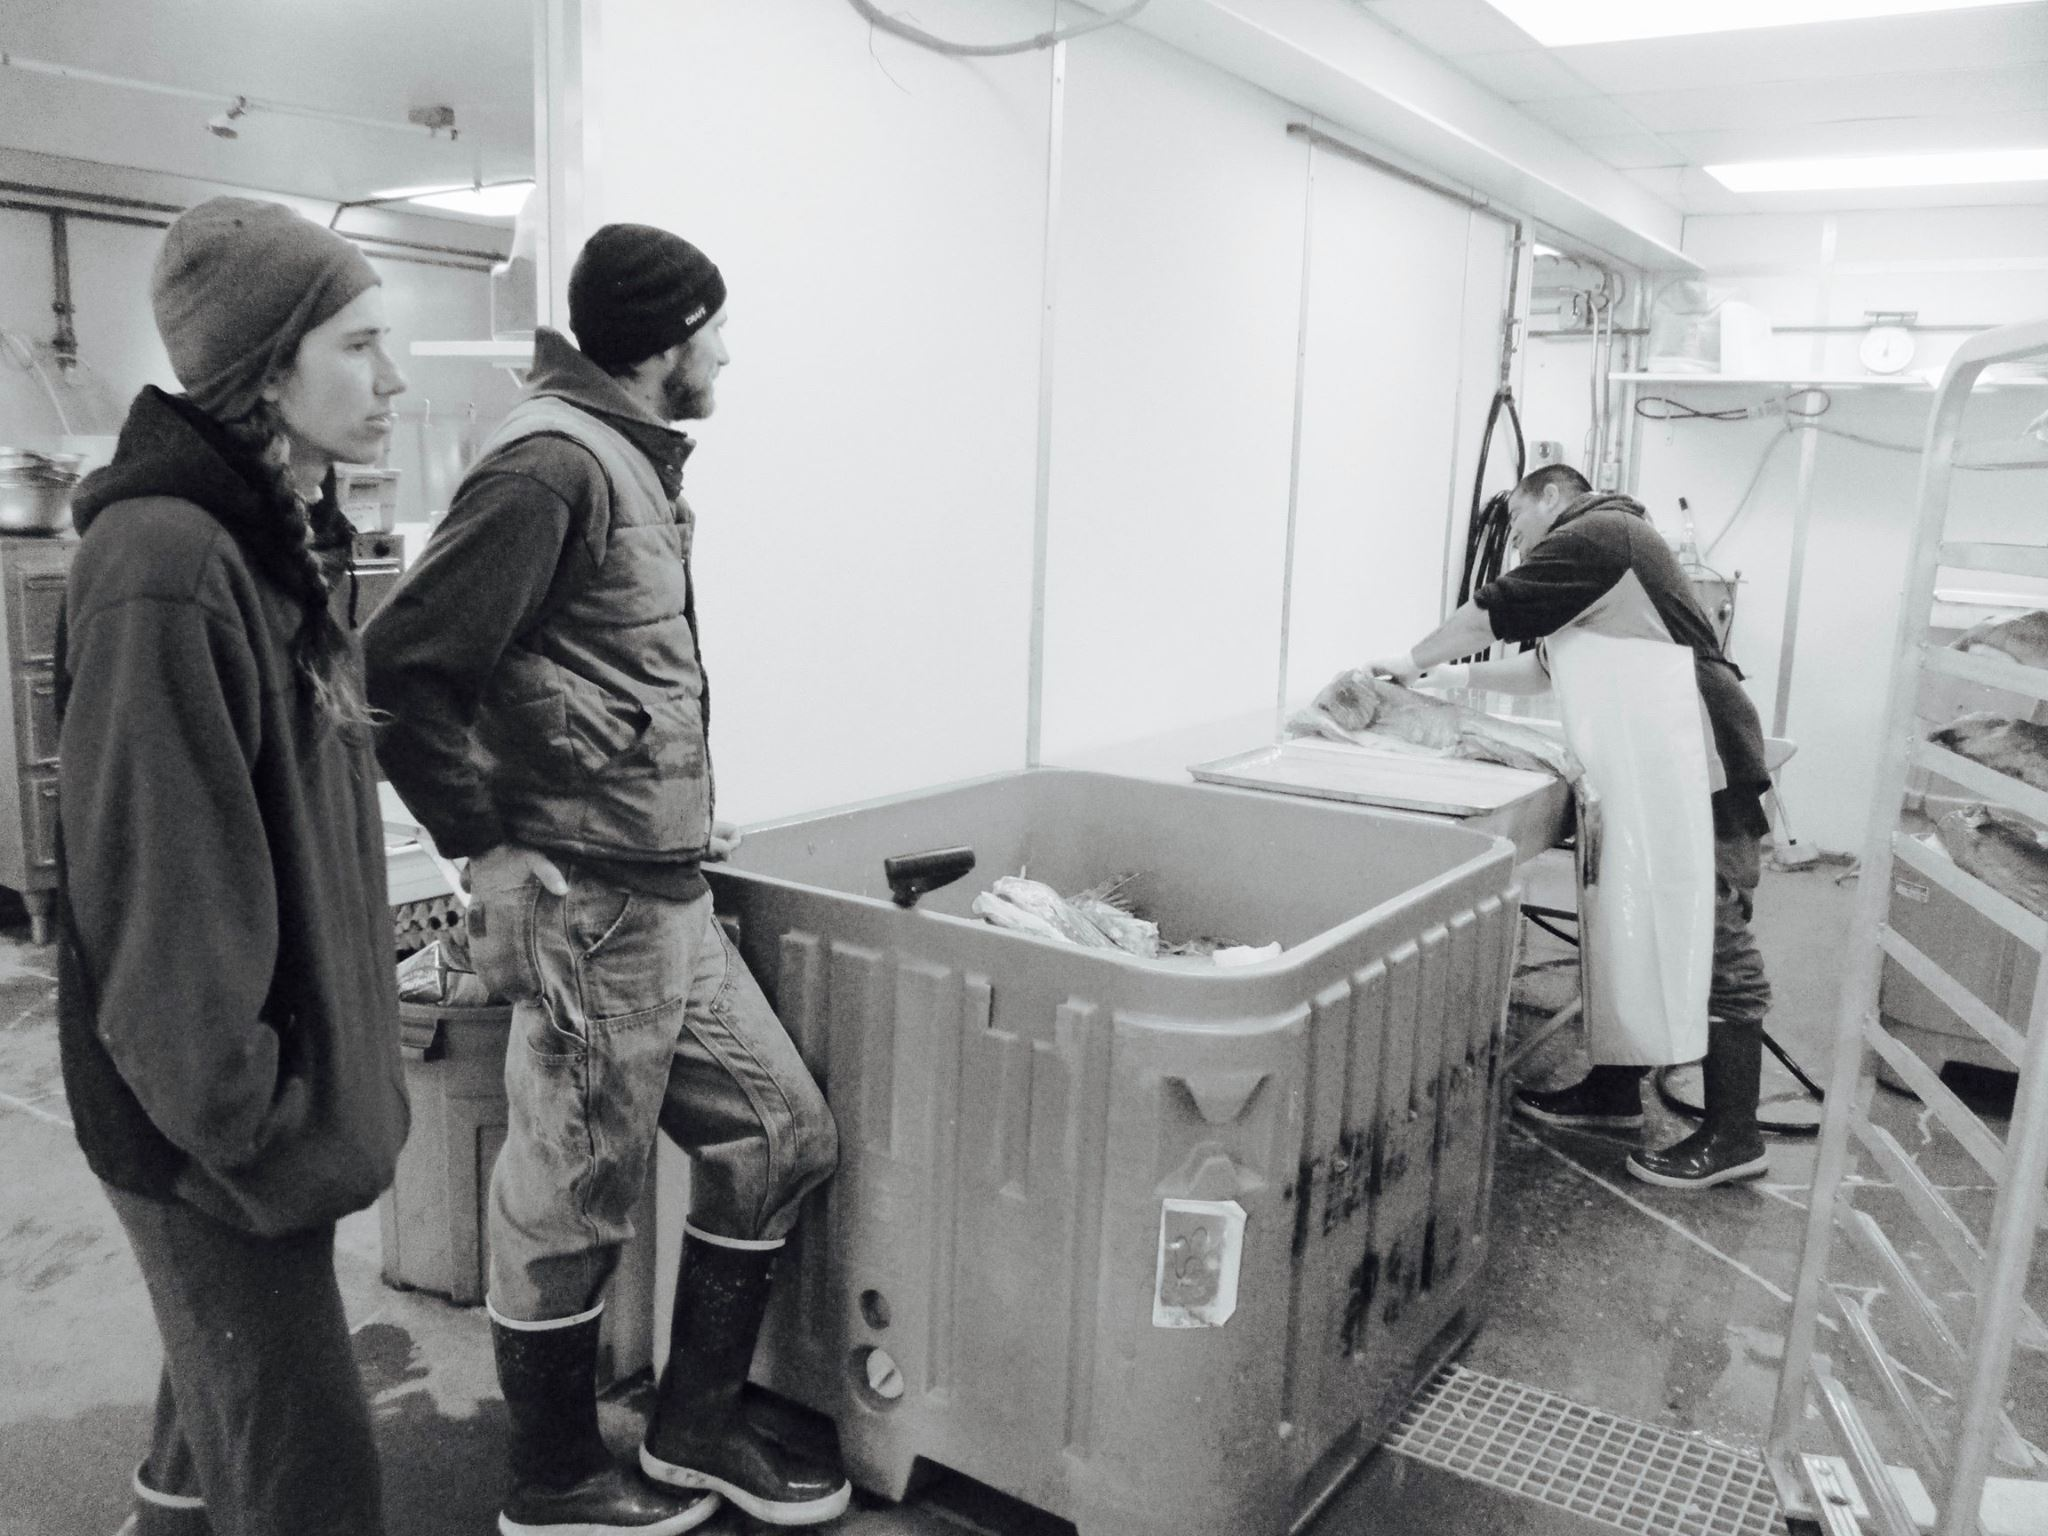 Here we are checking up on lingcod processing over at Coastal Cold Storage, one of the local small businesses where we get our catch filleted and packaged up. Photo by Erin Jakubek.